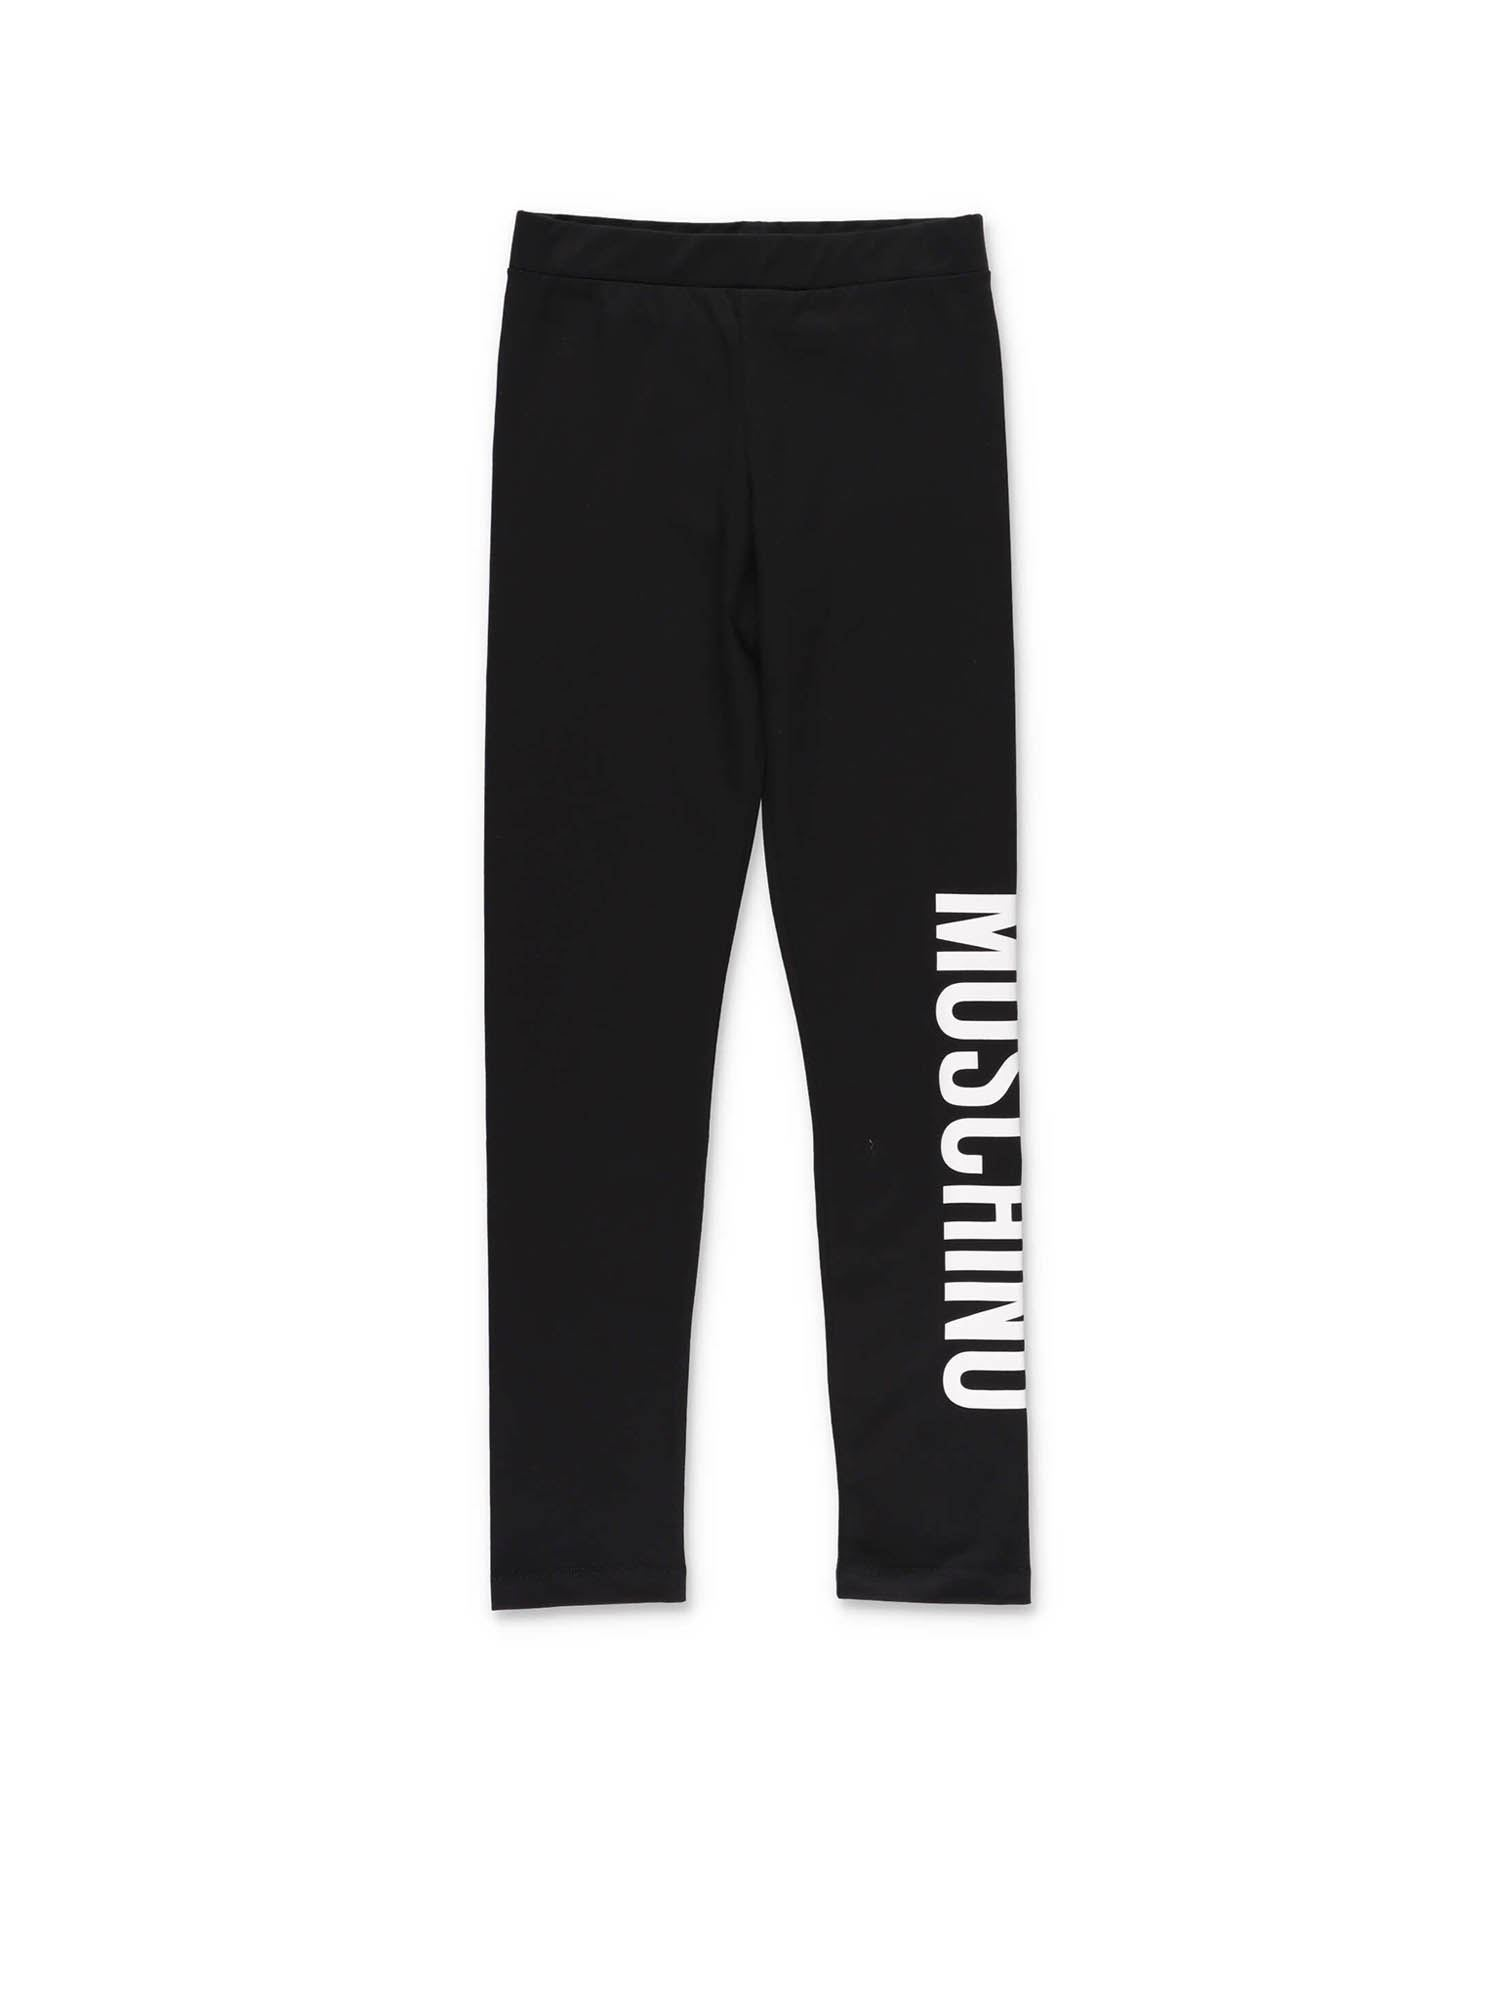 Moschino LOGO LEGGINGS IN BLACK